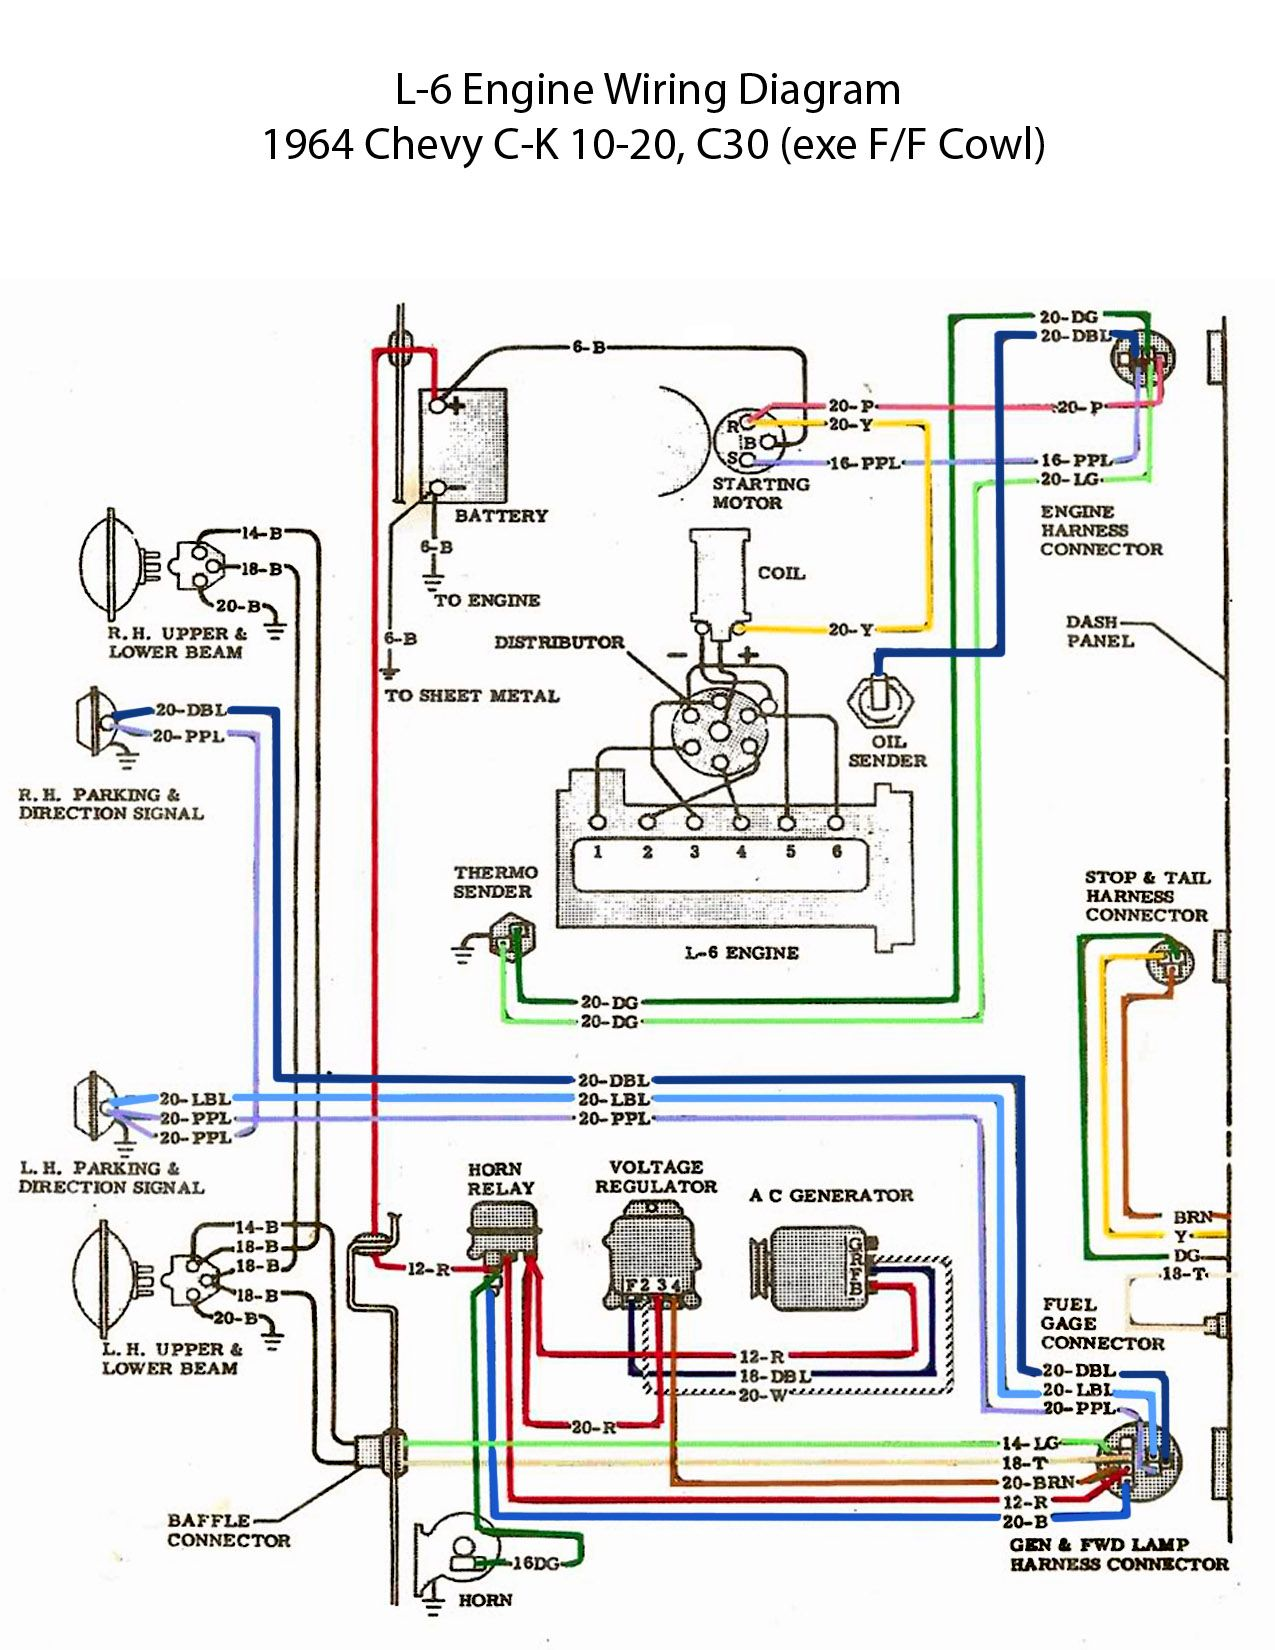 52f445b9f6cba1e2ba90979cb5234ed8 electric l 6 engine wiring diagram '60s chevy c10 wiring HEI Distributor Wiring Diagram at virtualis.co